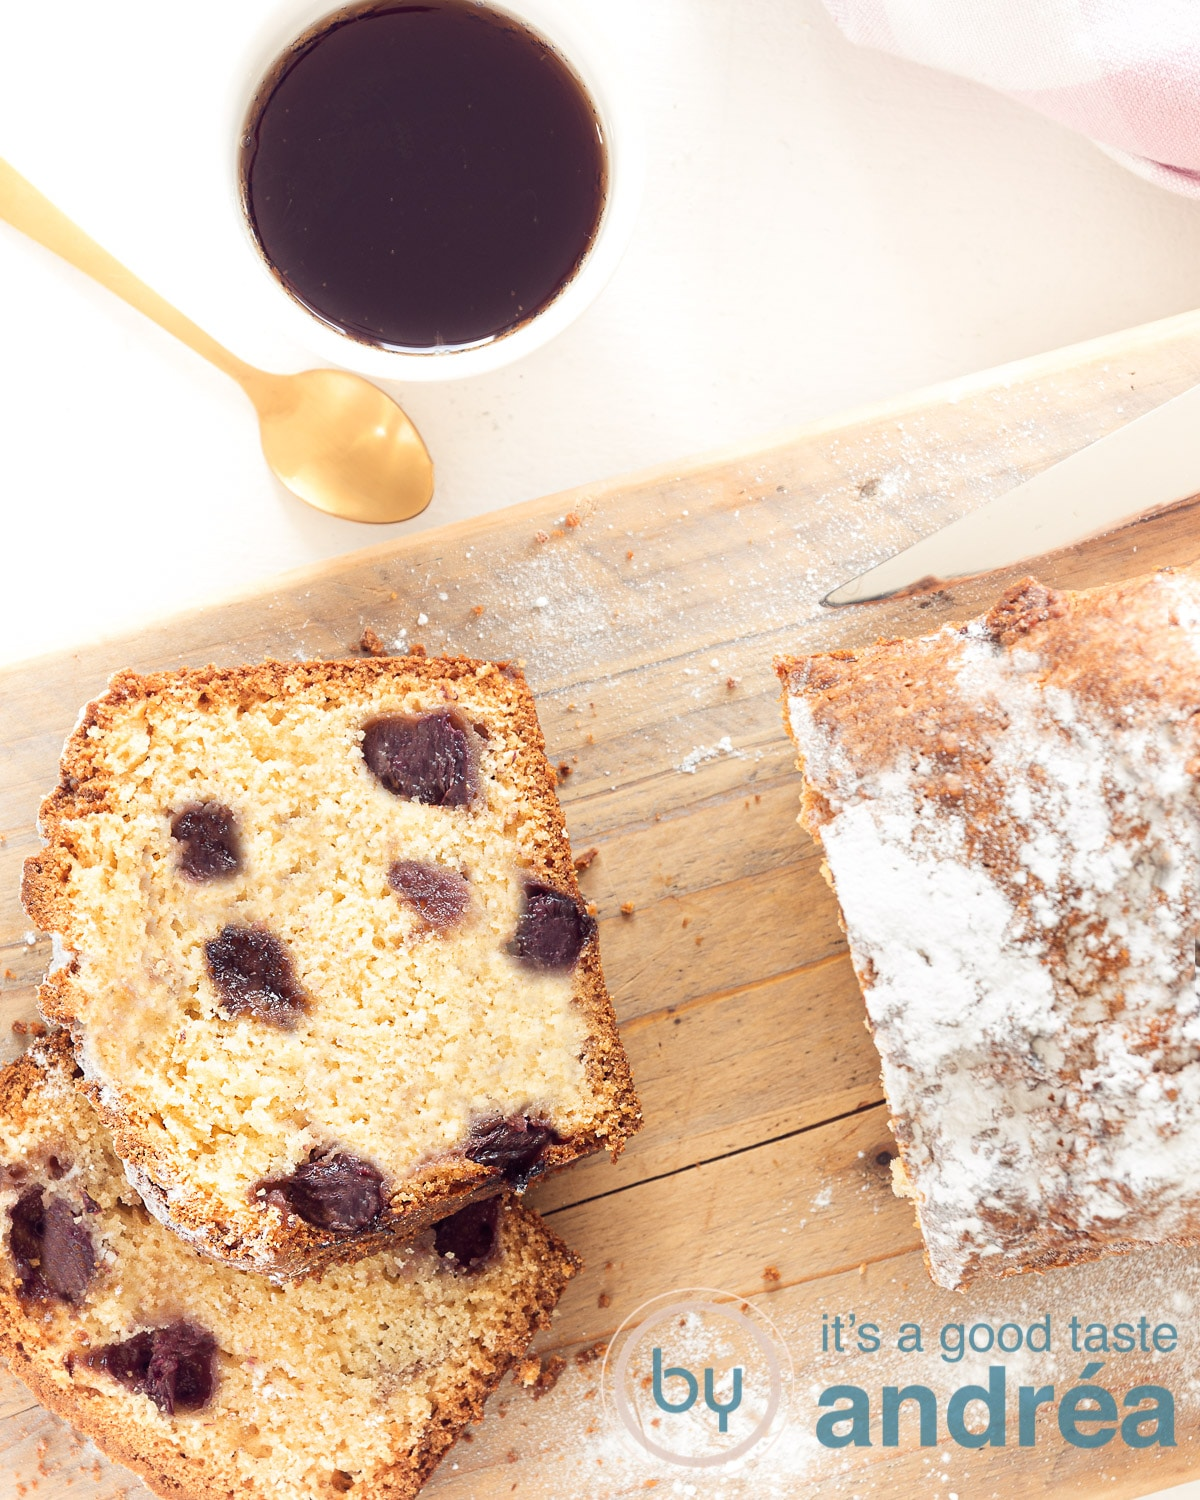 Photo from above. Cake on a wooden board. Cut two slices. At the top a cup of coffee with a golden spoon.